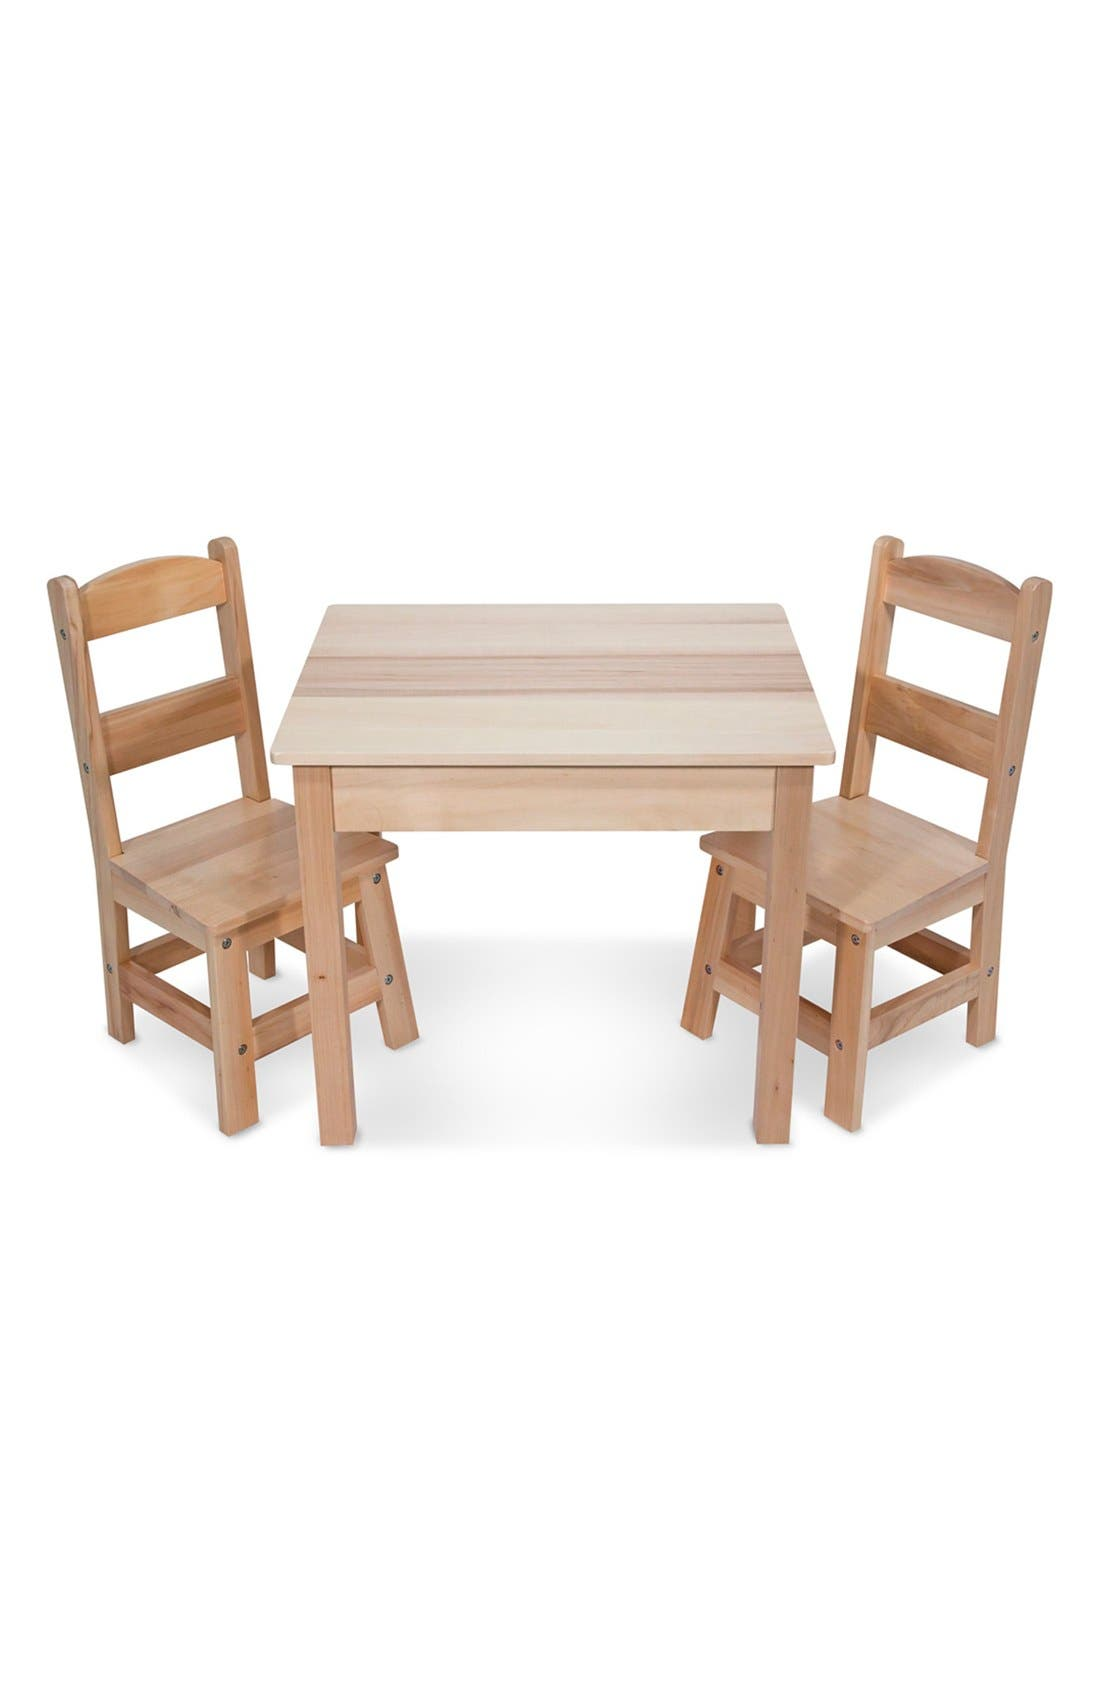 MELISSA & DOUG Wooden Table and Chairs Set